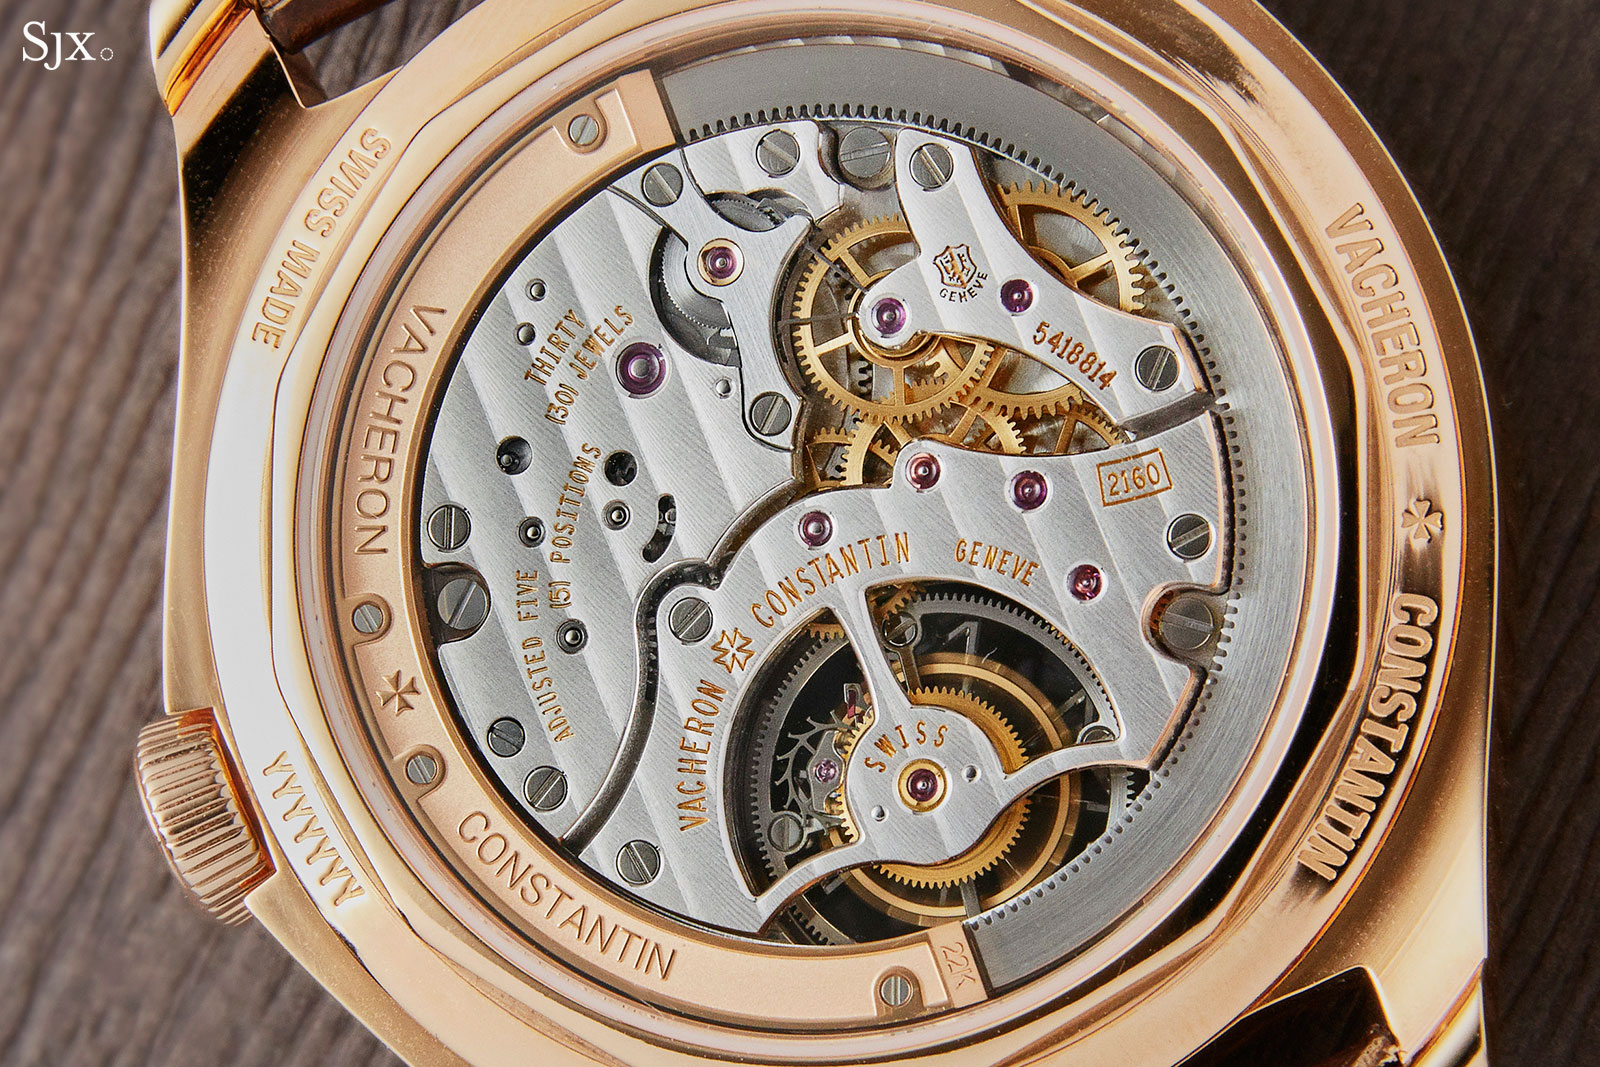 Vacheron Constantin FiftySix Tourbillon 3